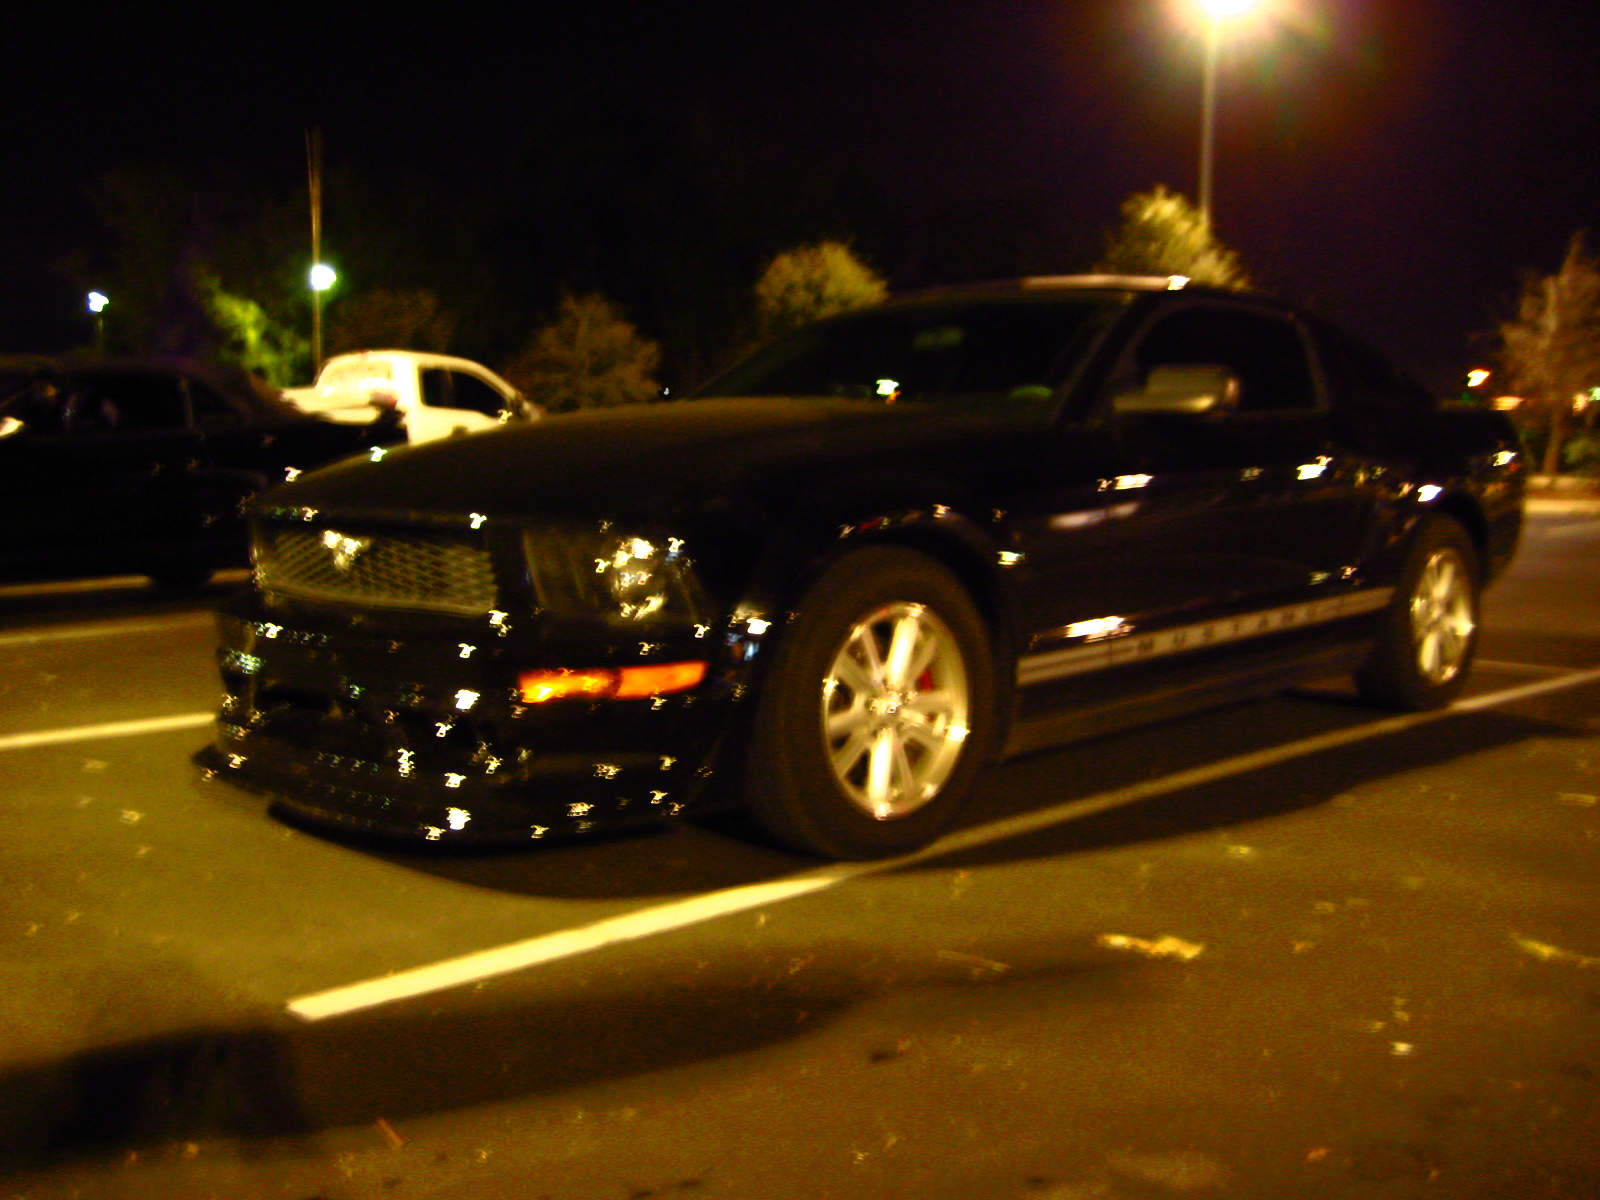 2006 Ford Mustang S197 V6 Coupe